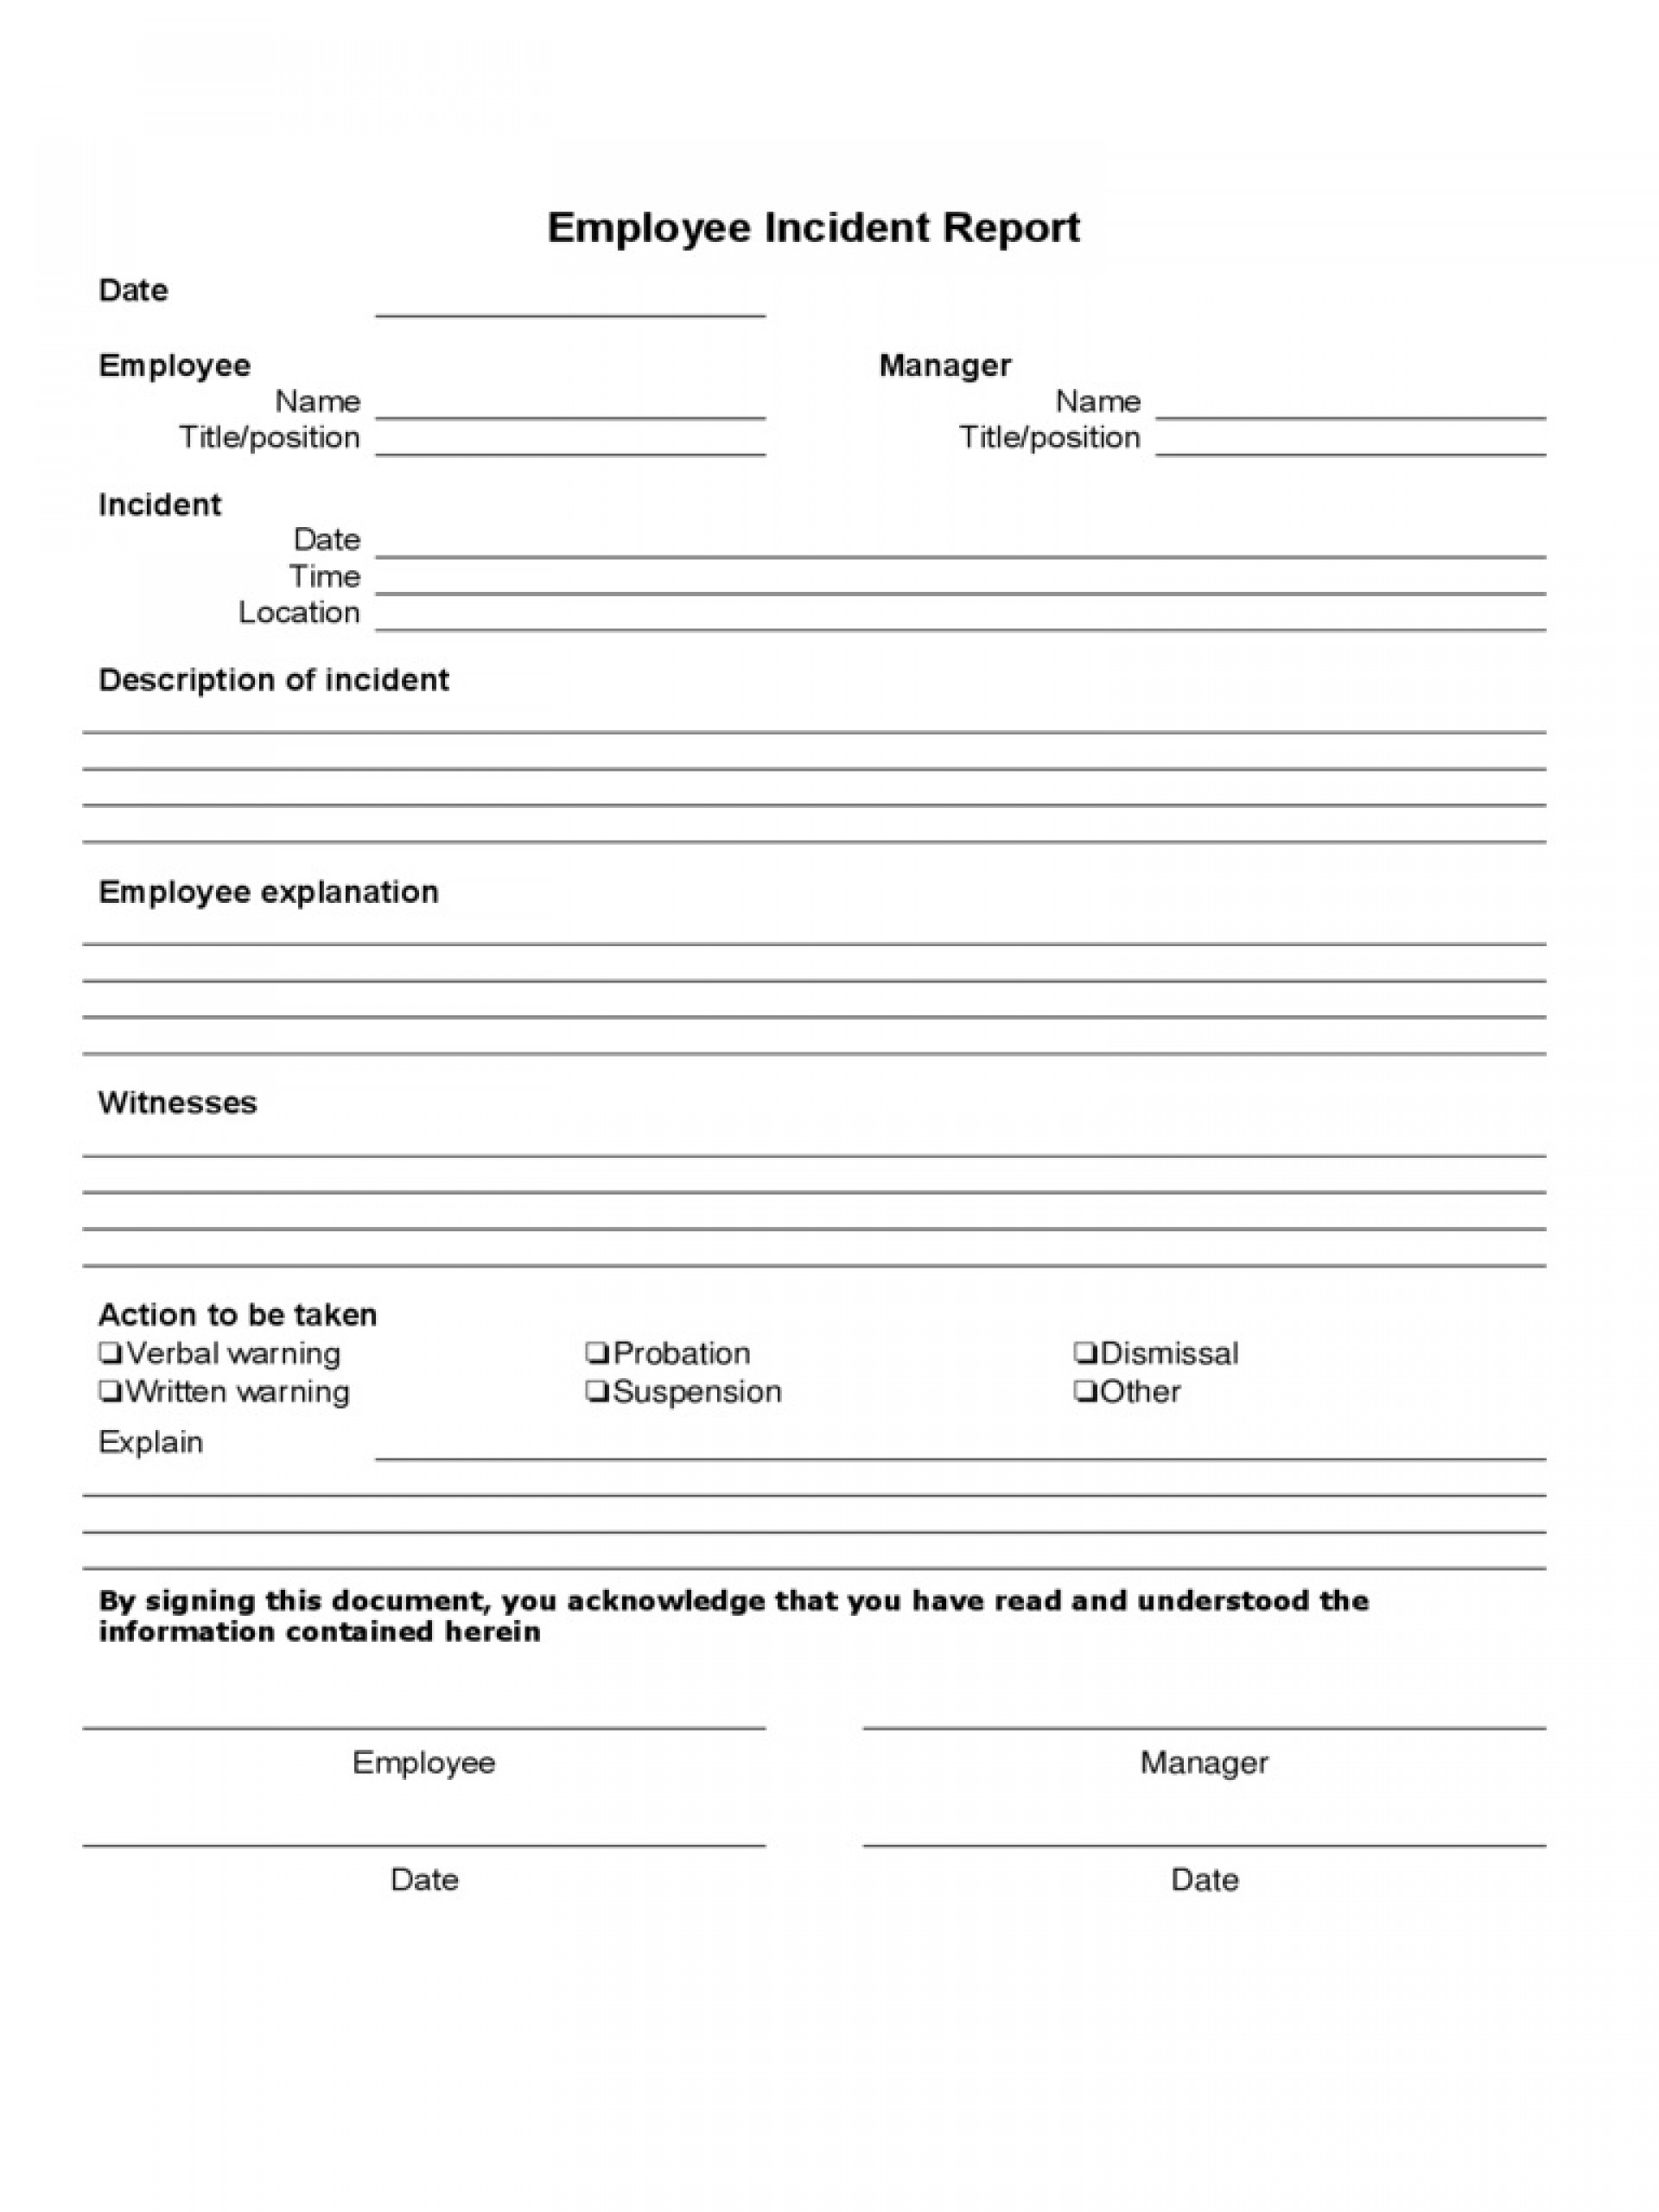 Incident Report Form Template Word Employee  Downloadable Free1920